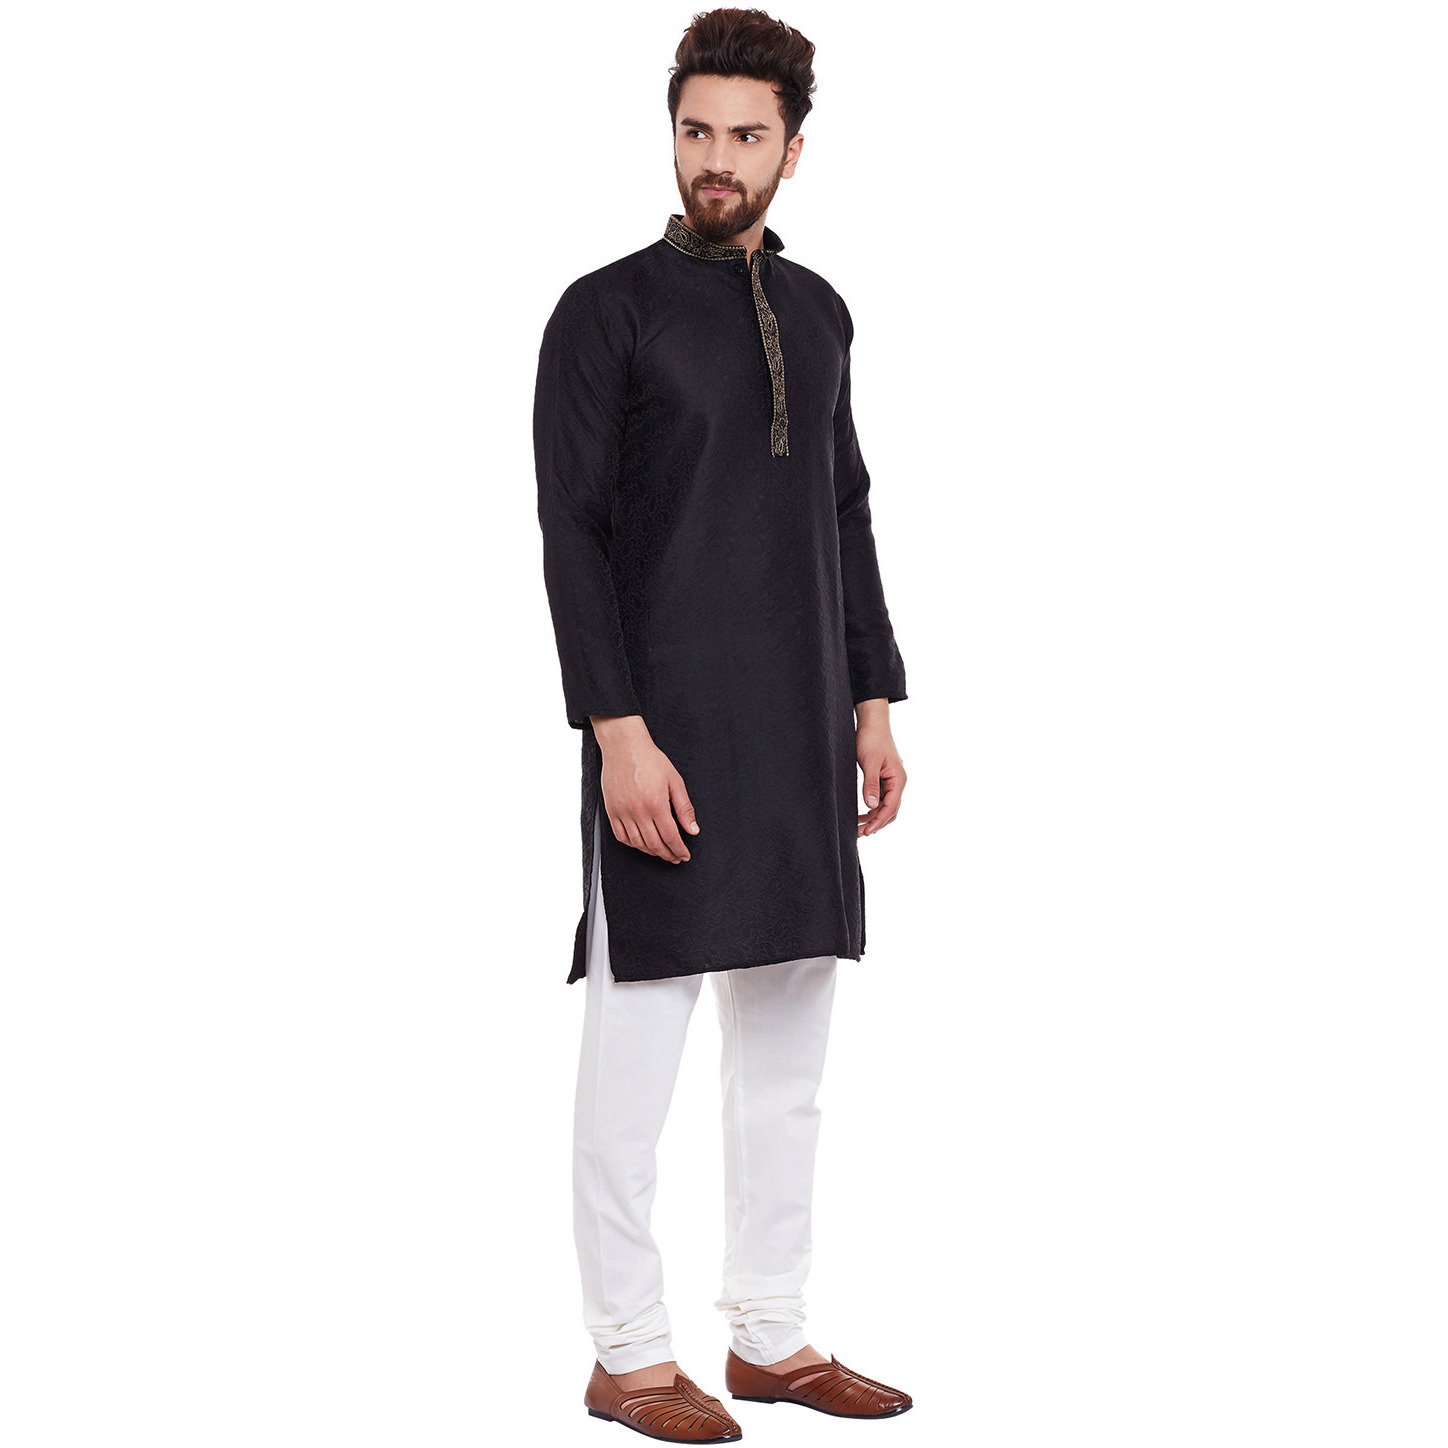 Mens Silk Black Self design pattern Designer Kurta Churidaar Set Long Sleeve Ban collar Regular Fit